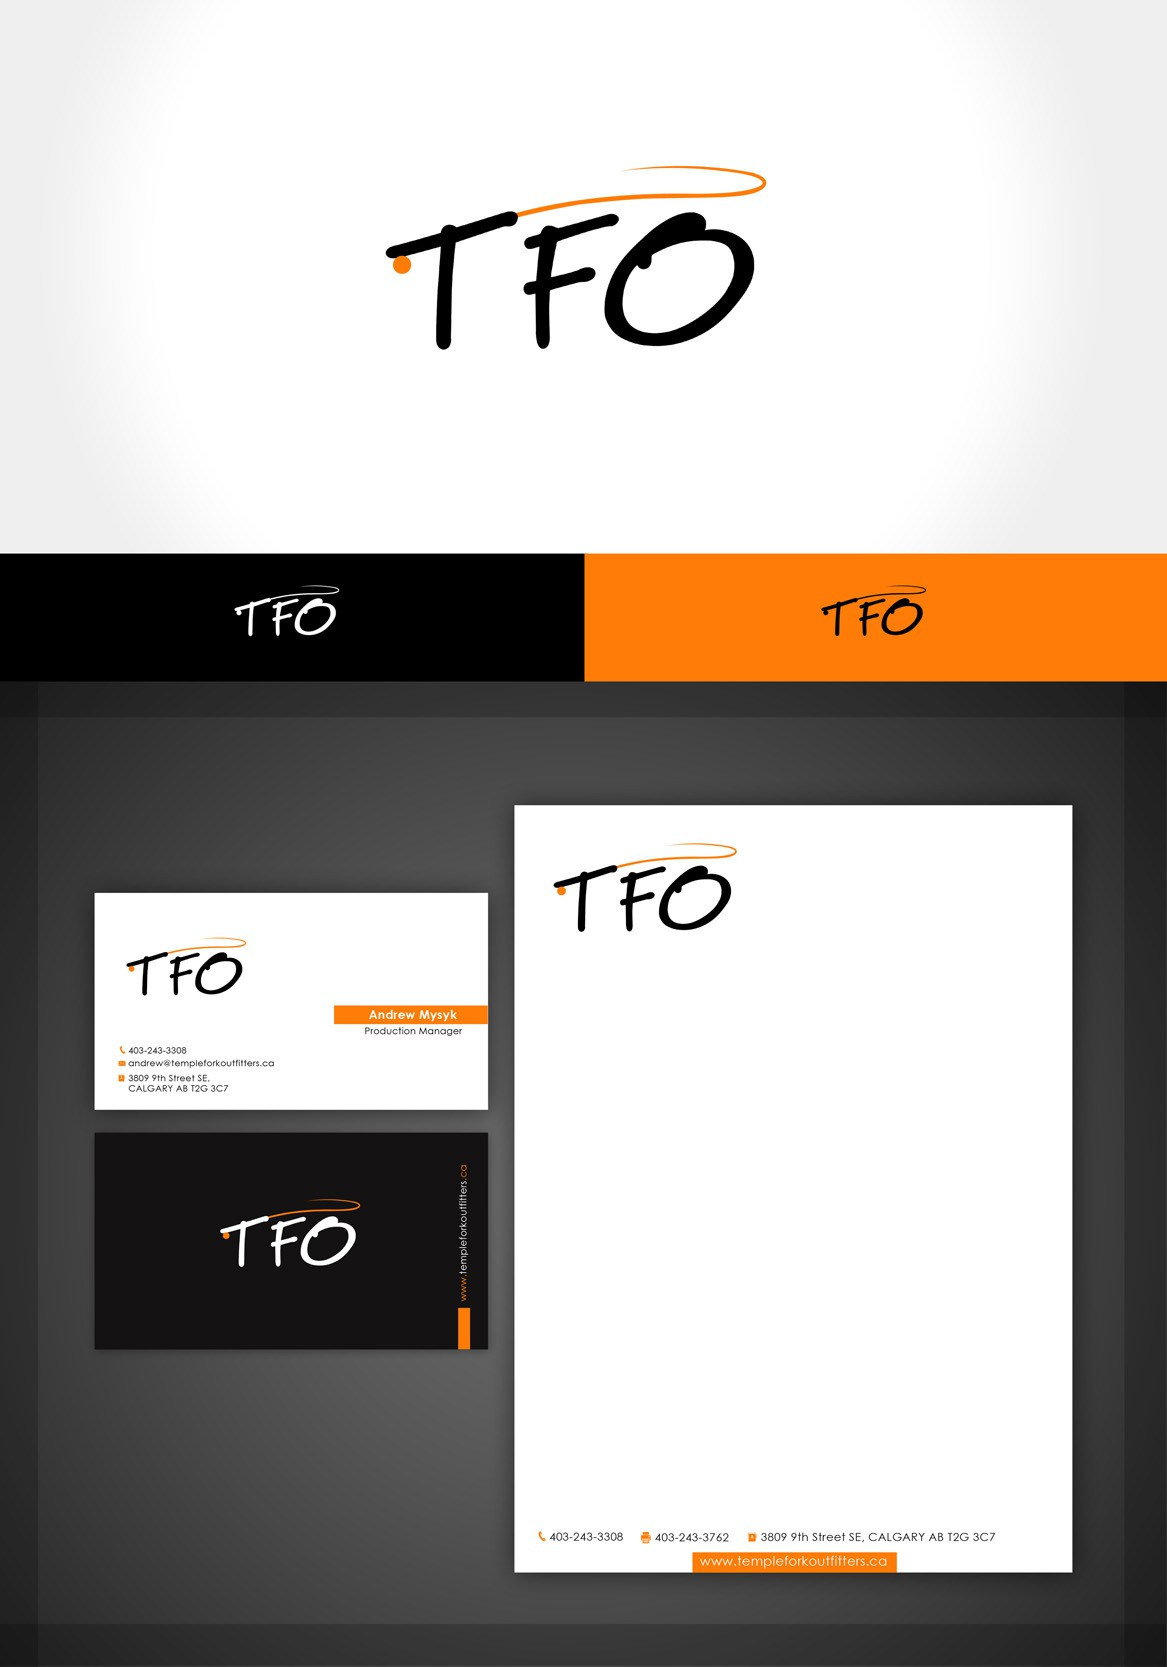 TFO needs a new logo and business card